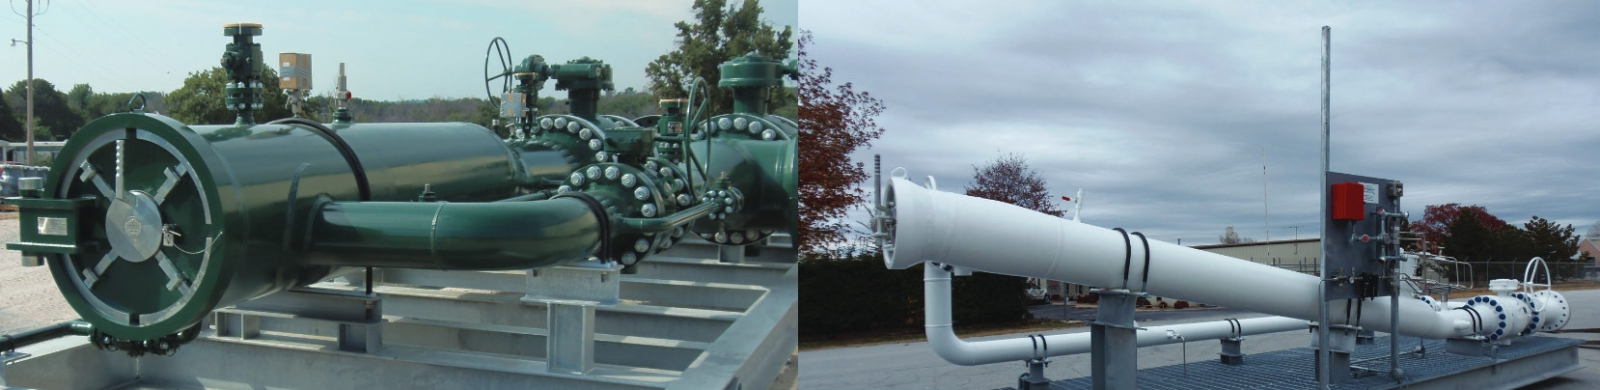 Pipeline Equipment Launchers & Receivers